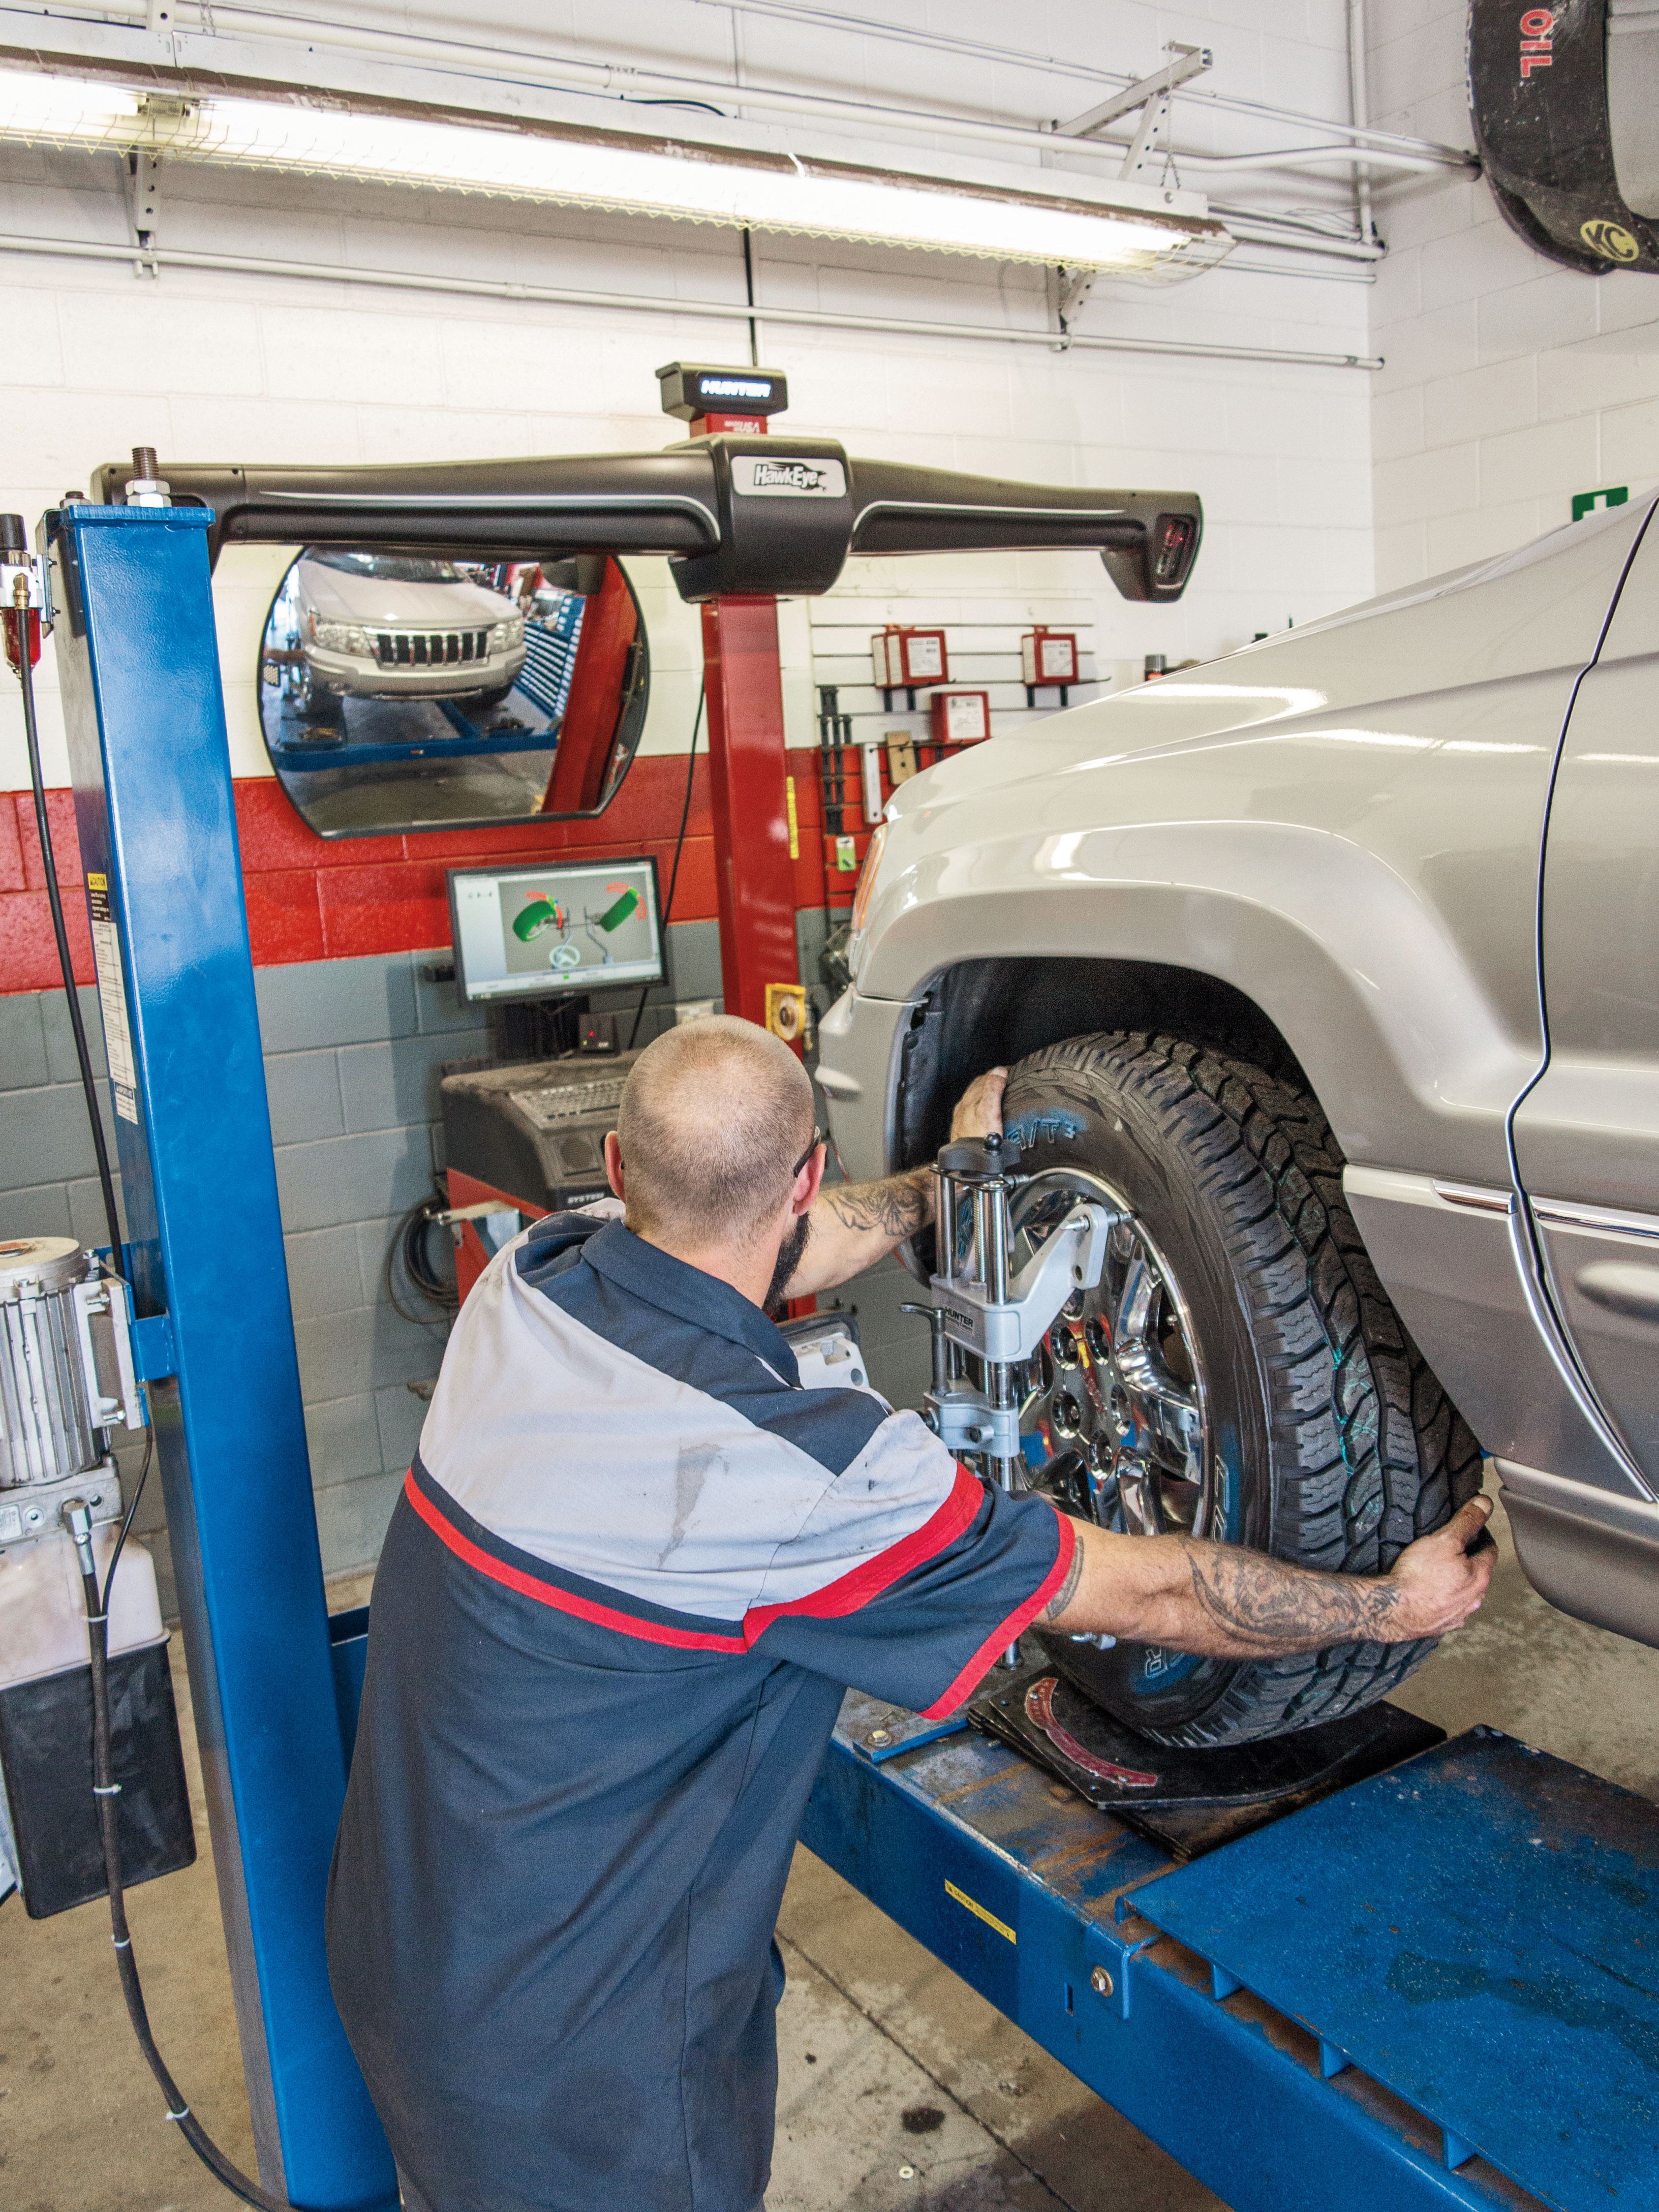 While I was at 4Wheel Parts getting the tires mounted, I also had them perform a four-wheel alignment. This is a good idea after you do any suspension work, and we did not want to take any chances of premature wear our brand-new Cooper tires.